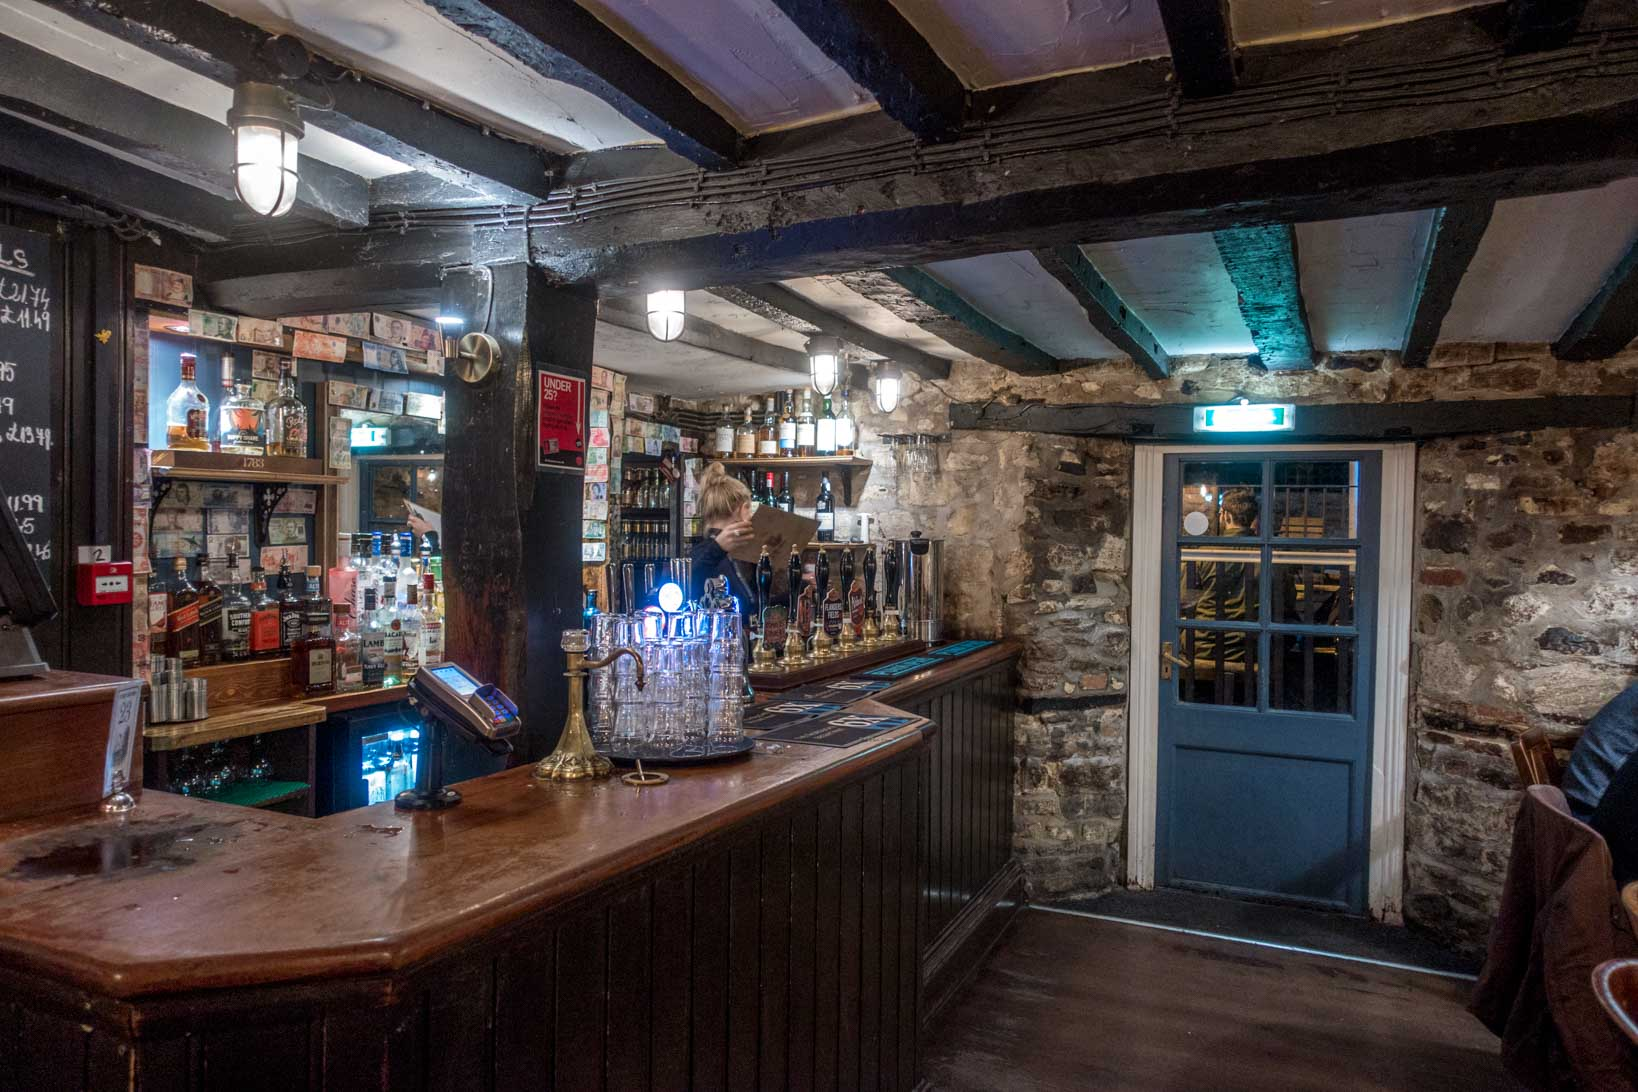 Inside the historic Turf Tavern in Oxford, England